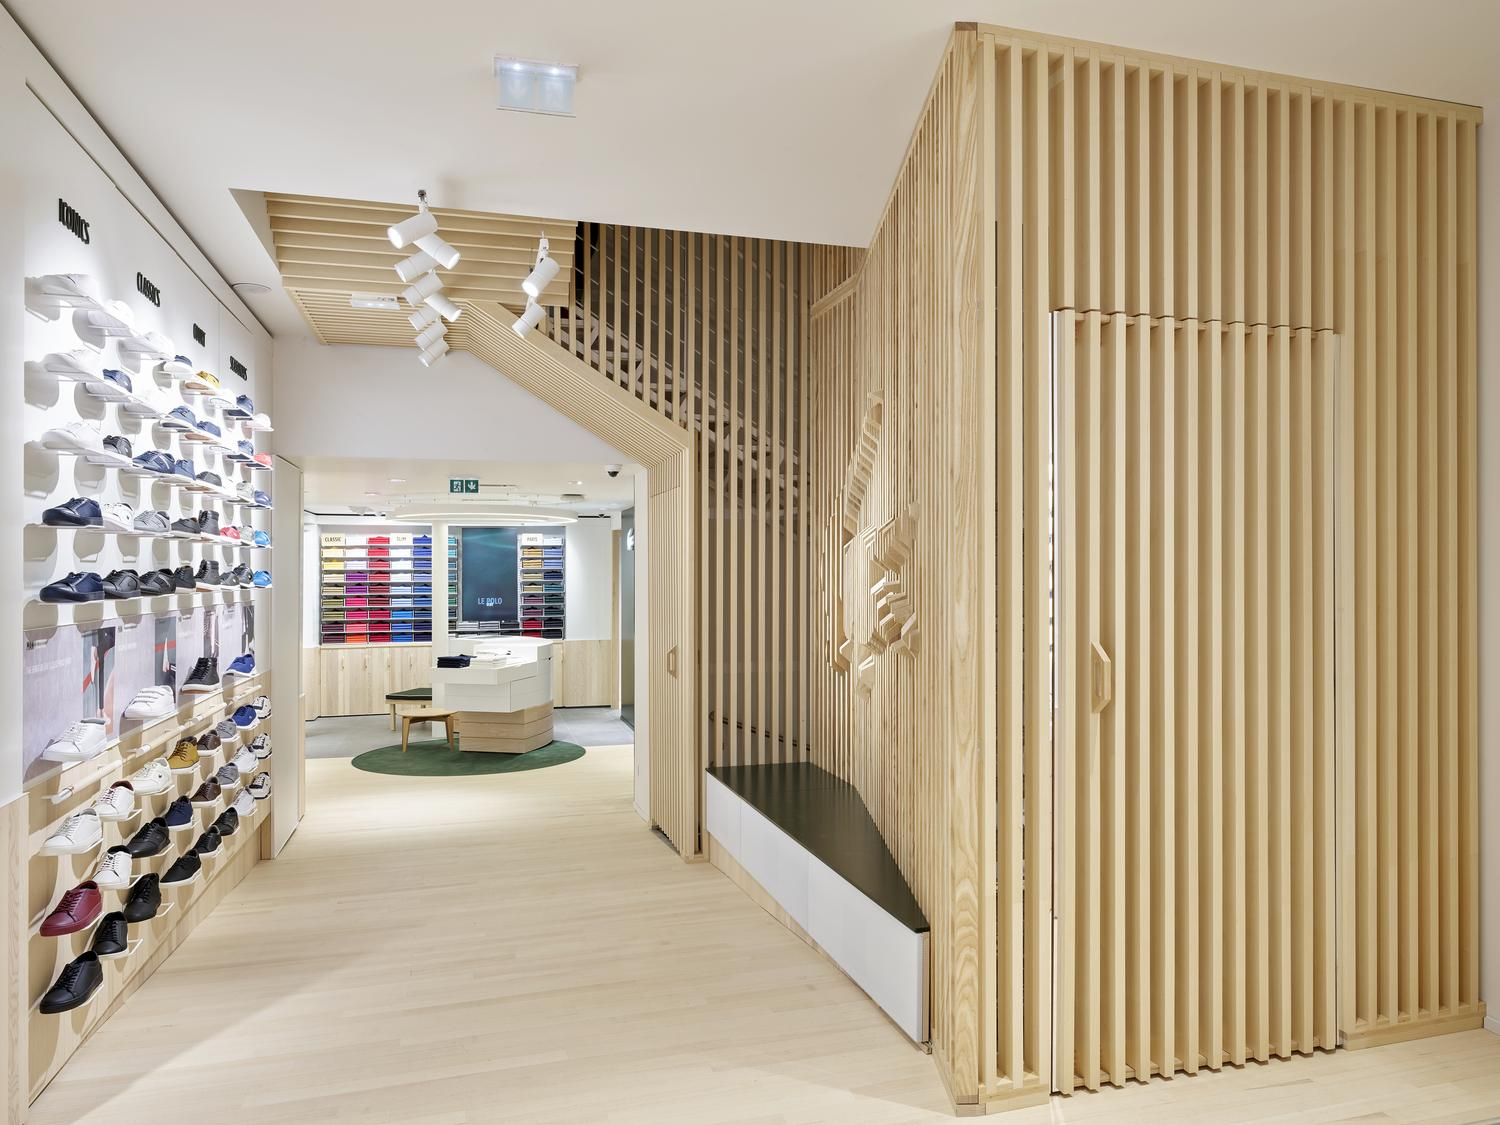 LACOSTE-MEDIA6-ATELIERS-NORMAND-RETAIL-SHOP-FITTING